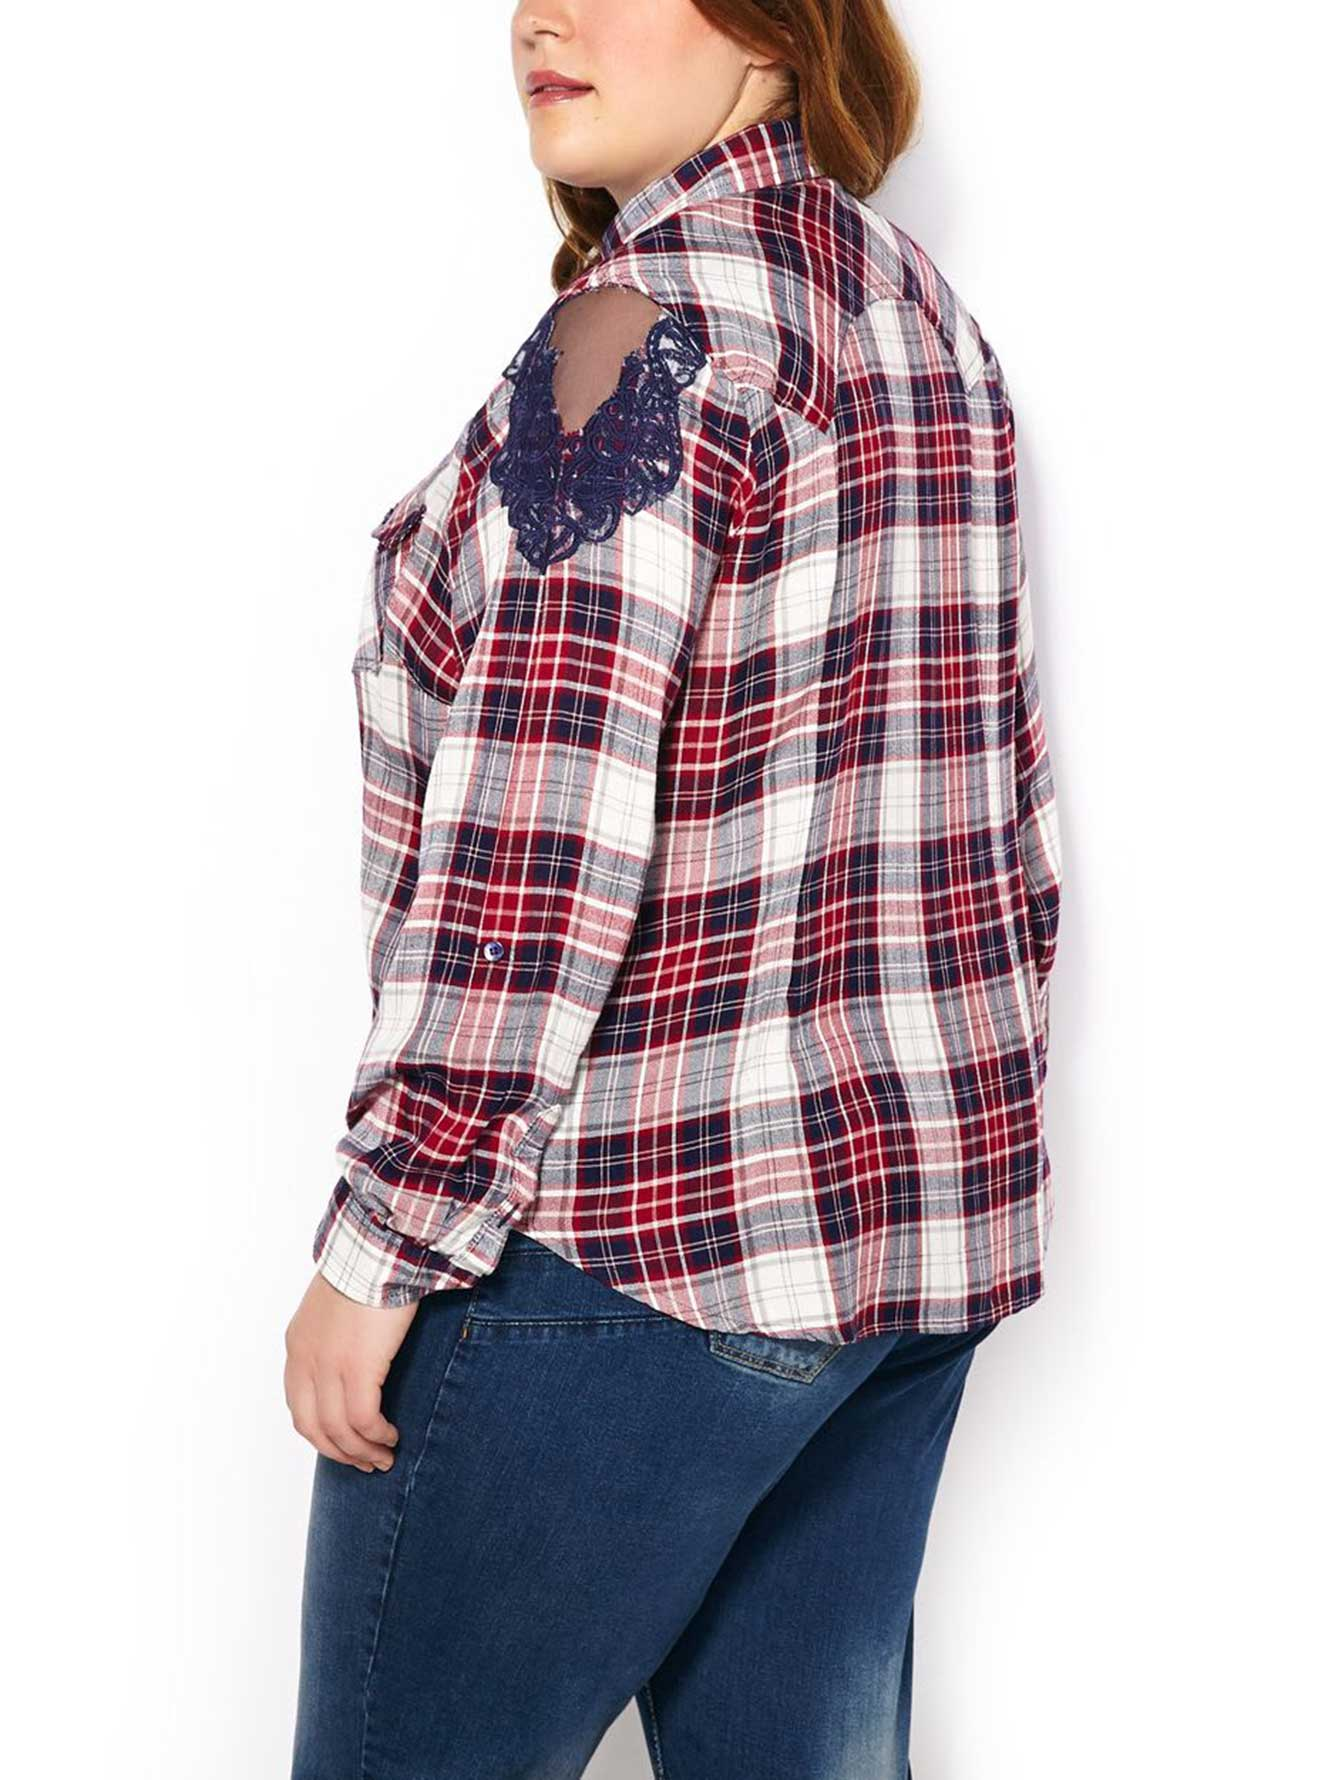 Long Sleeve Plaid Shirt With Lace Penningtons